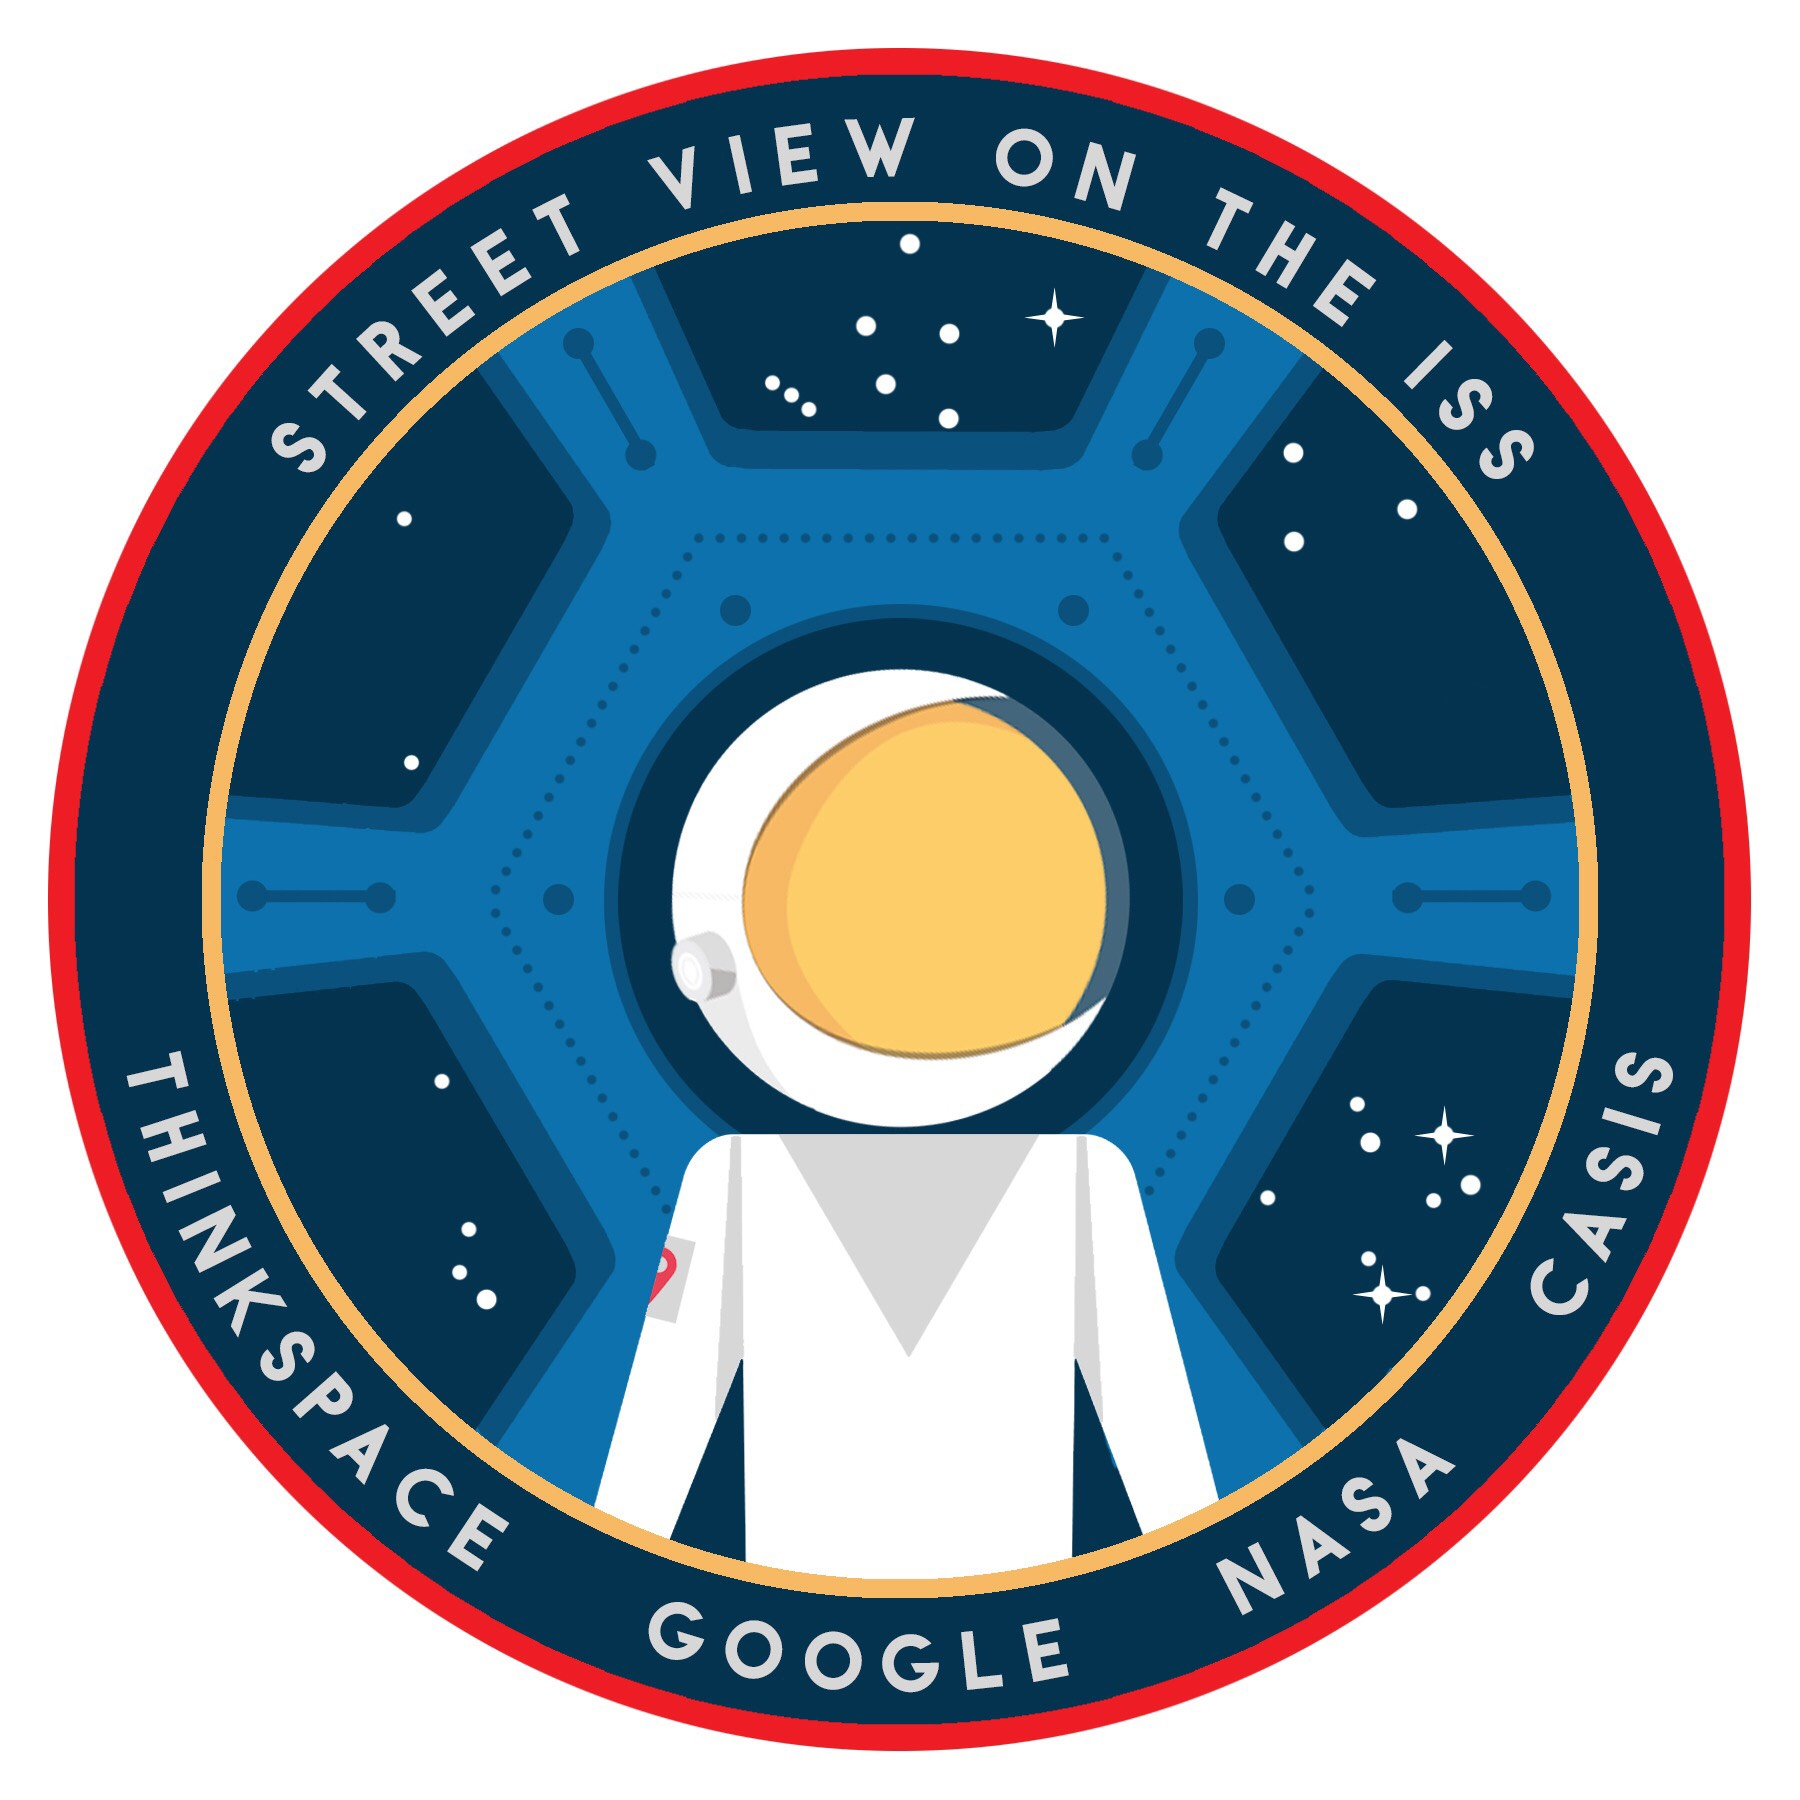 External image rocket1 gif - The Iss Google Street View Mission Patch Thinkspace Google